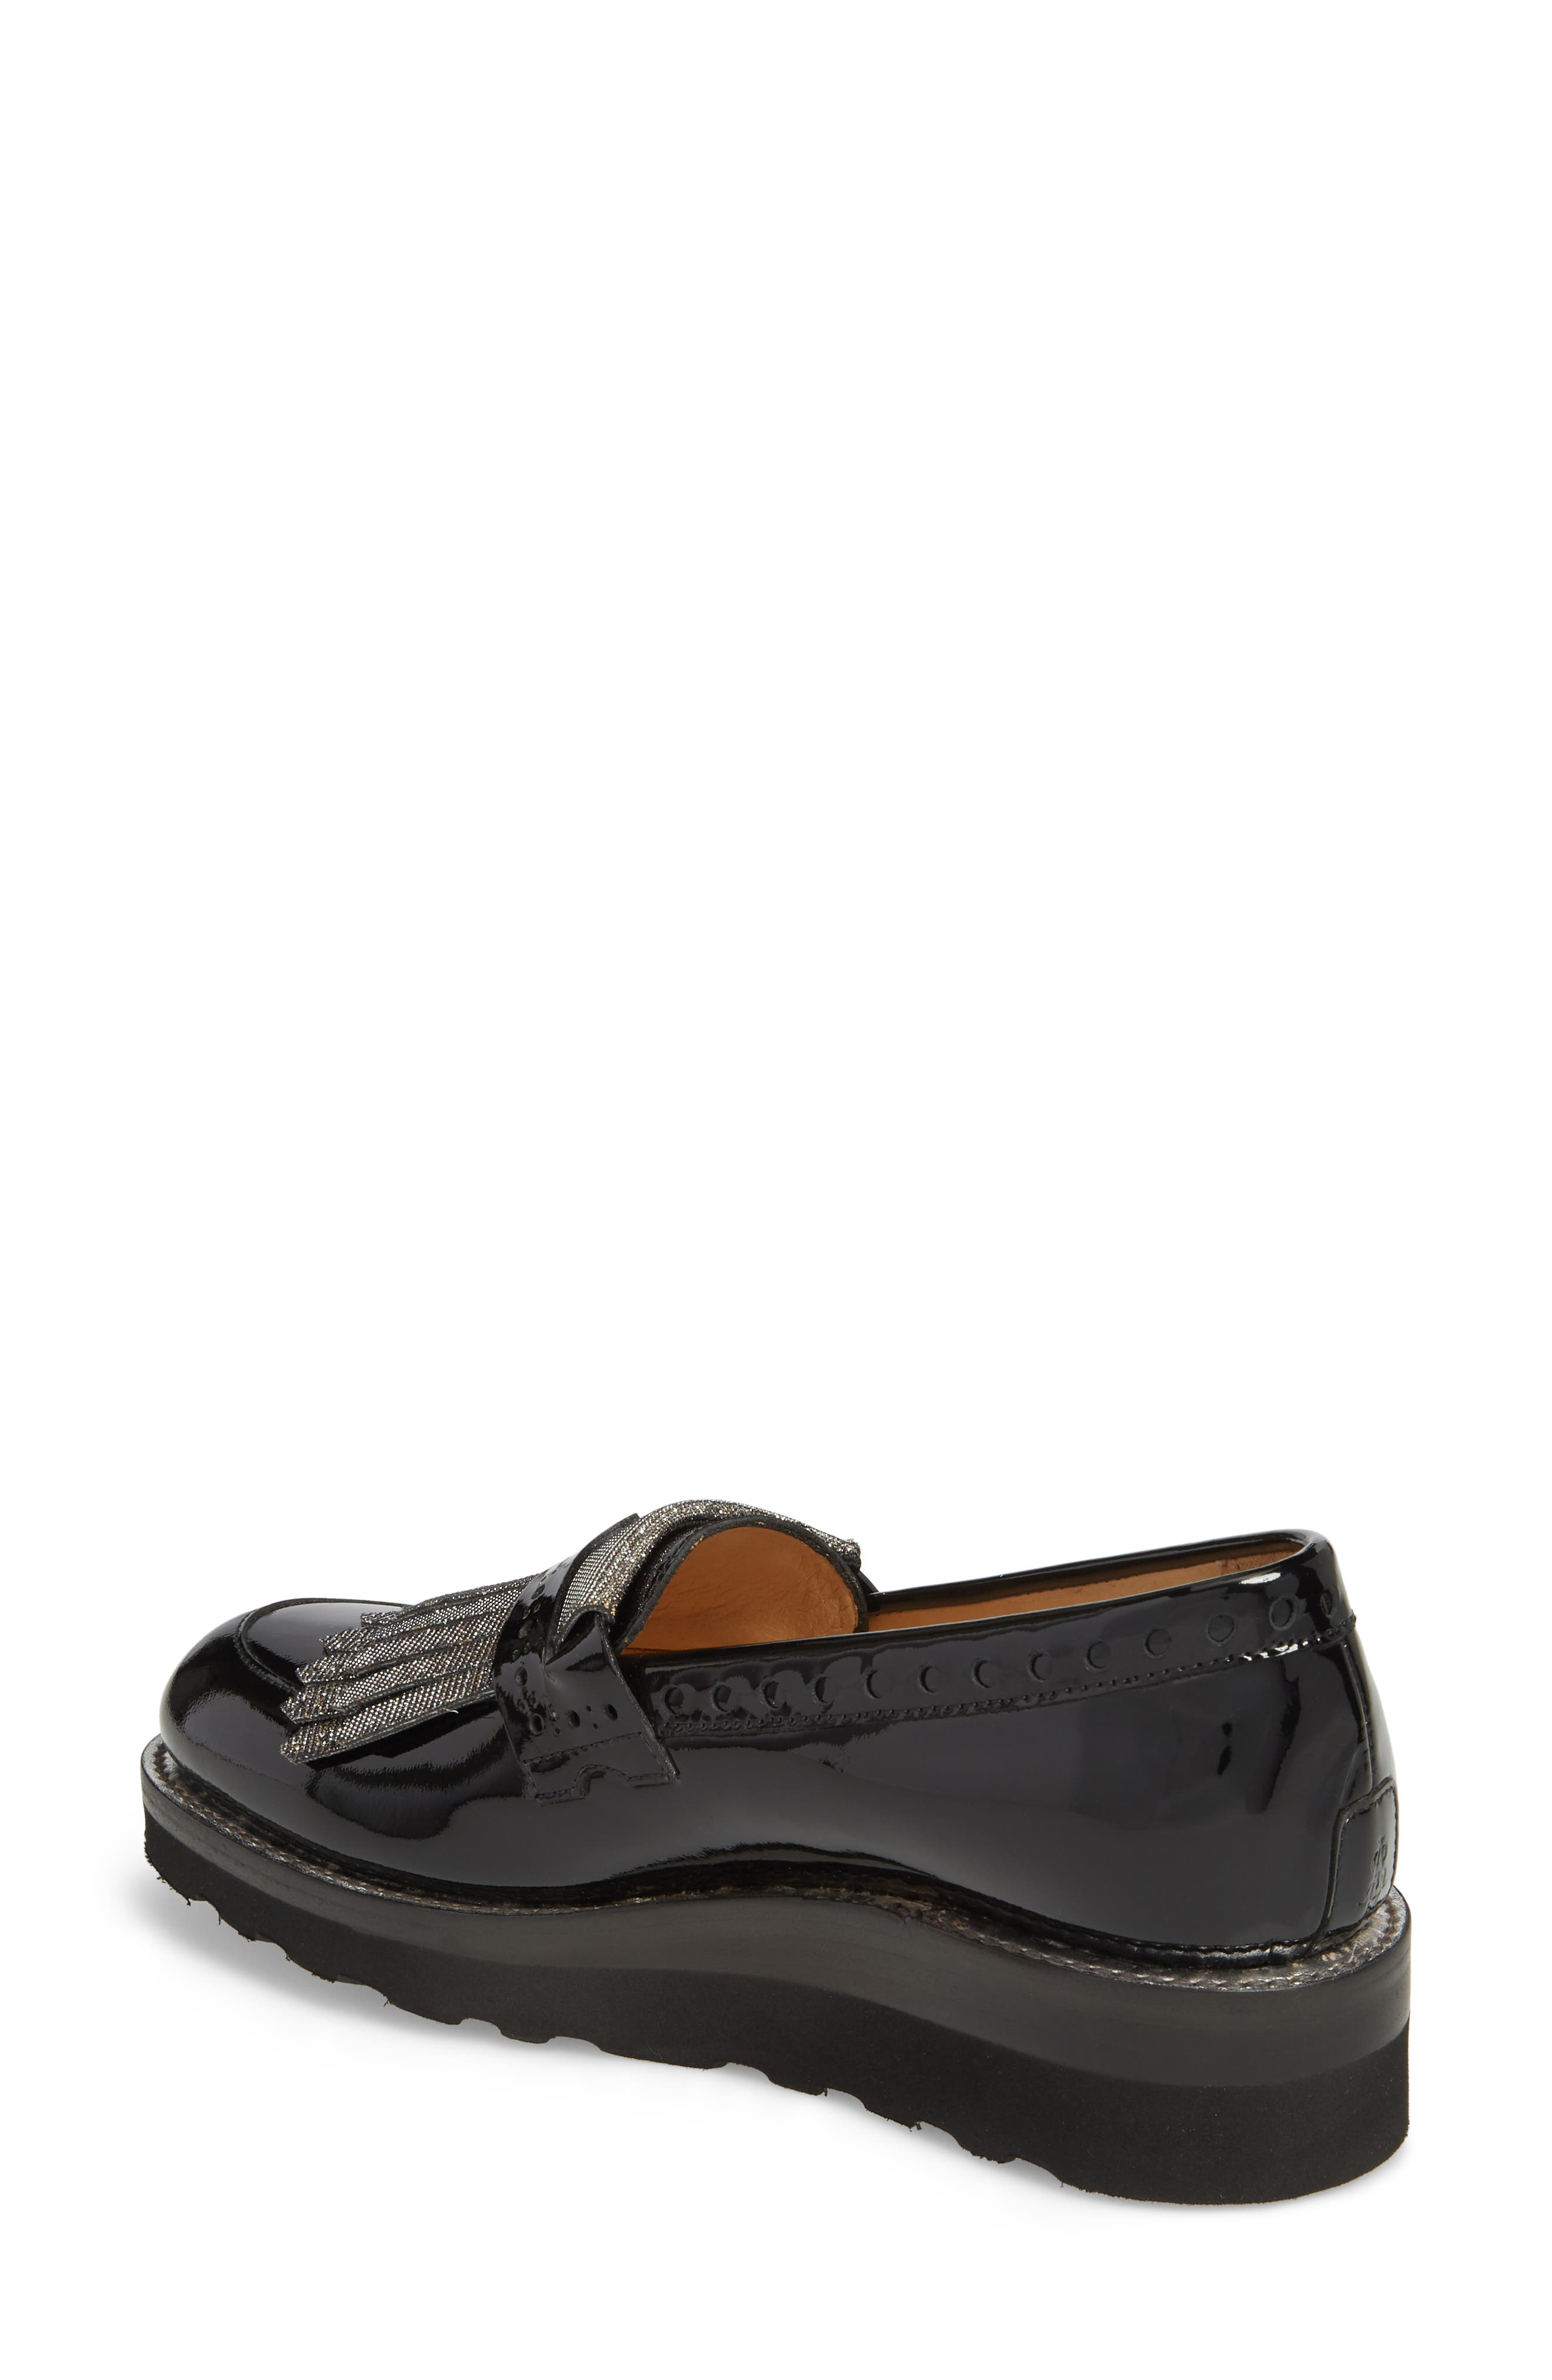 Mr. Pennywise Wedge Loafer,                             Alternate thumbnail 2, color,                             Black Metallic